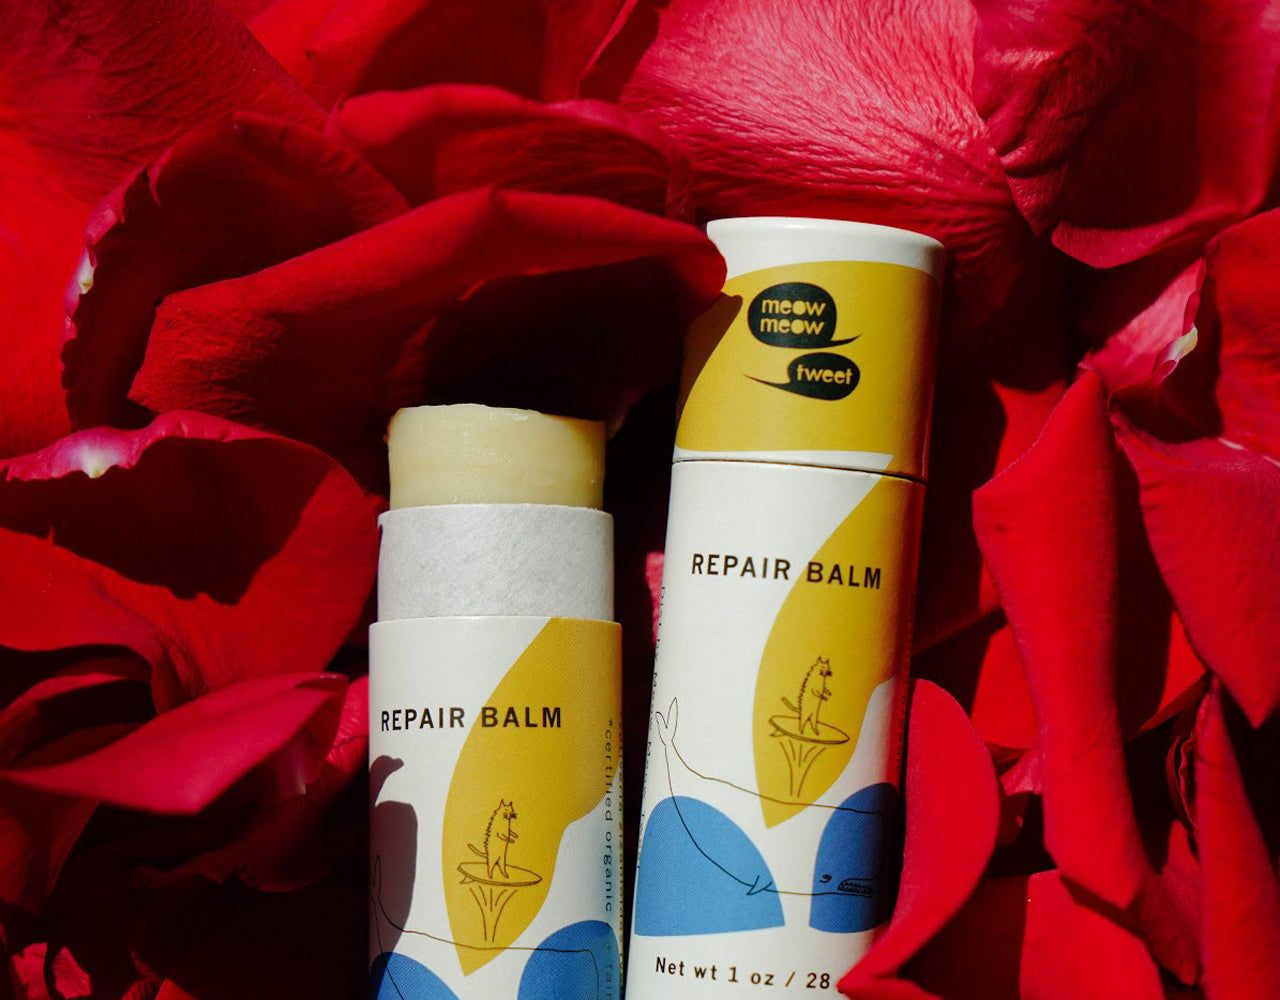 Open stick of repair balm against a background of red rose petals